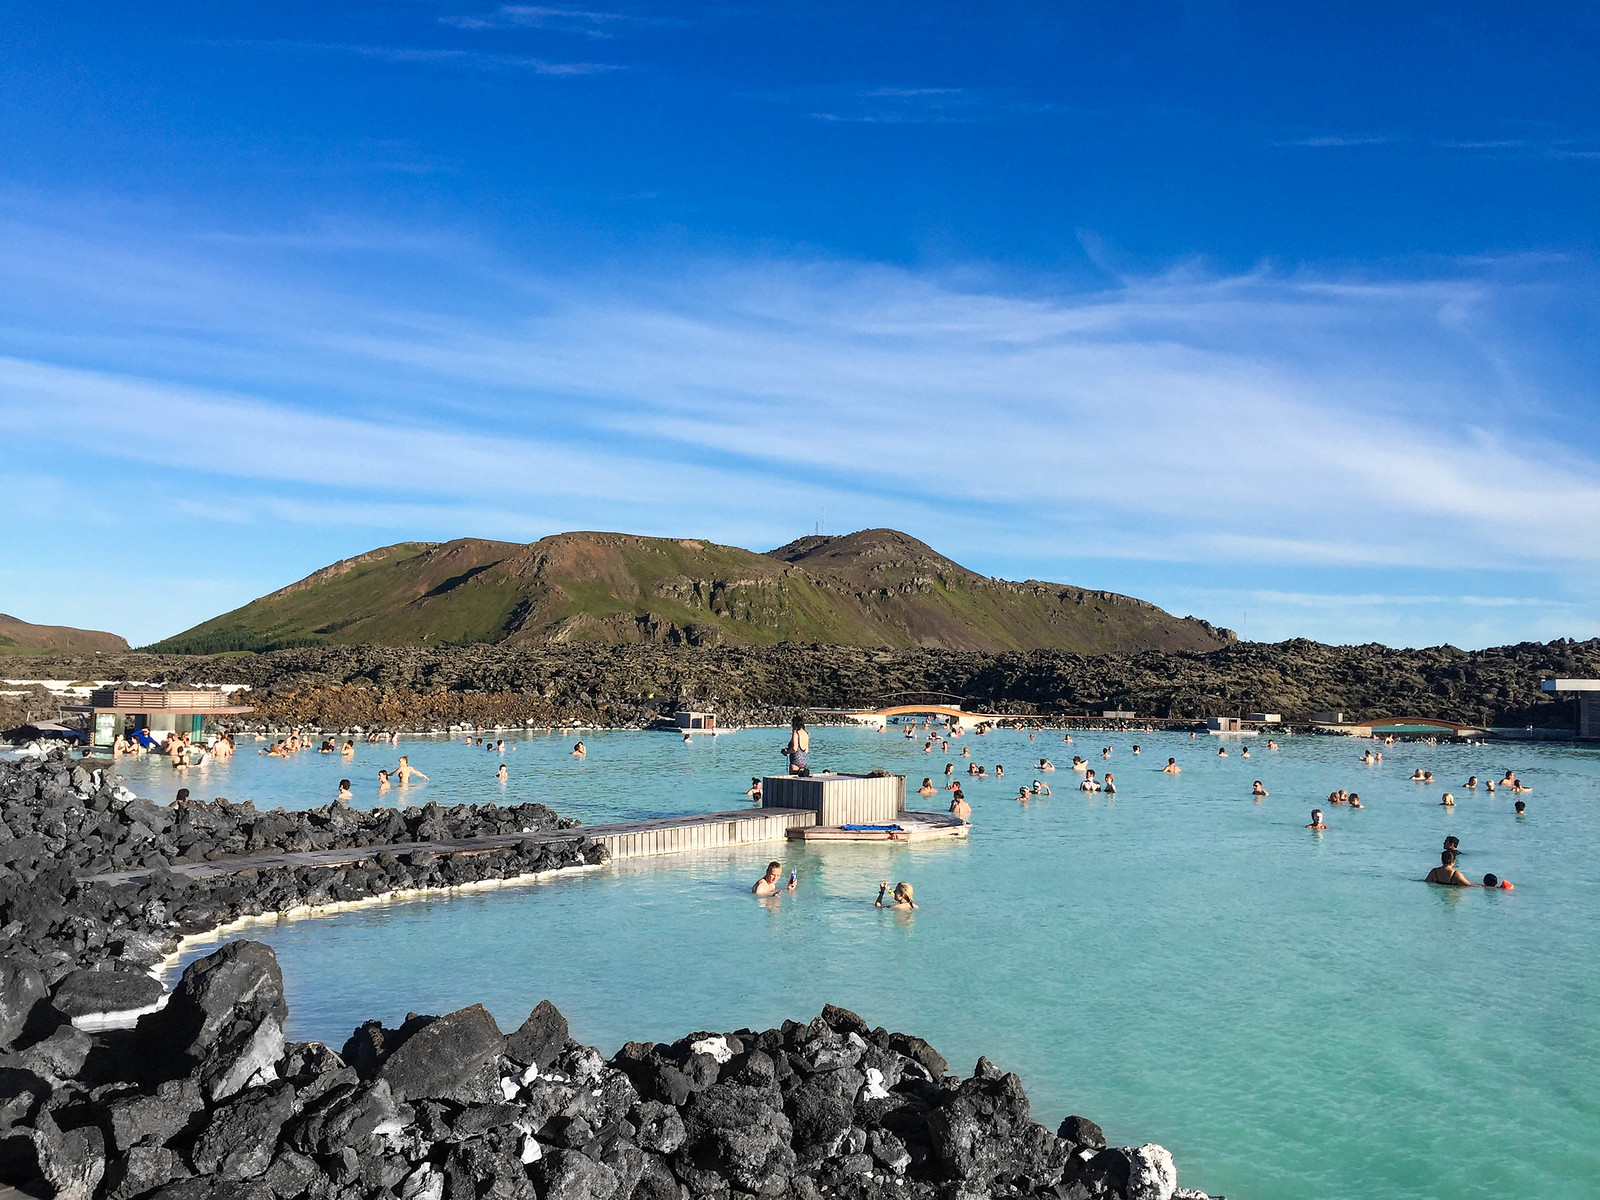 The Blue Lagoon: Making the most of a weekend stopover in Iceland